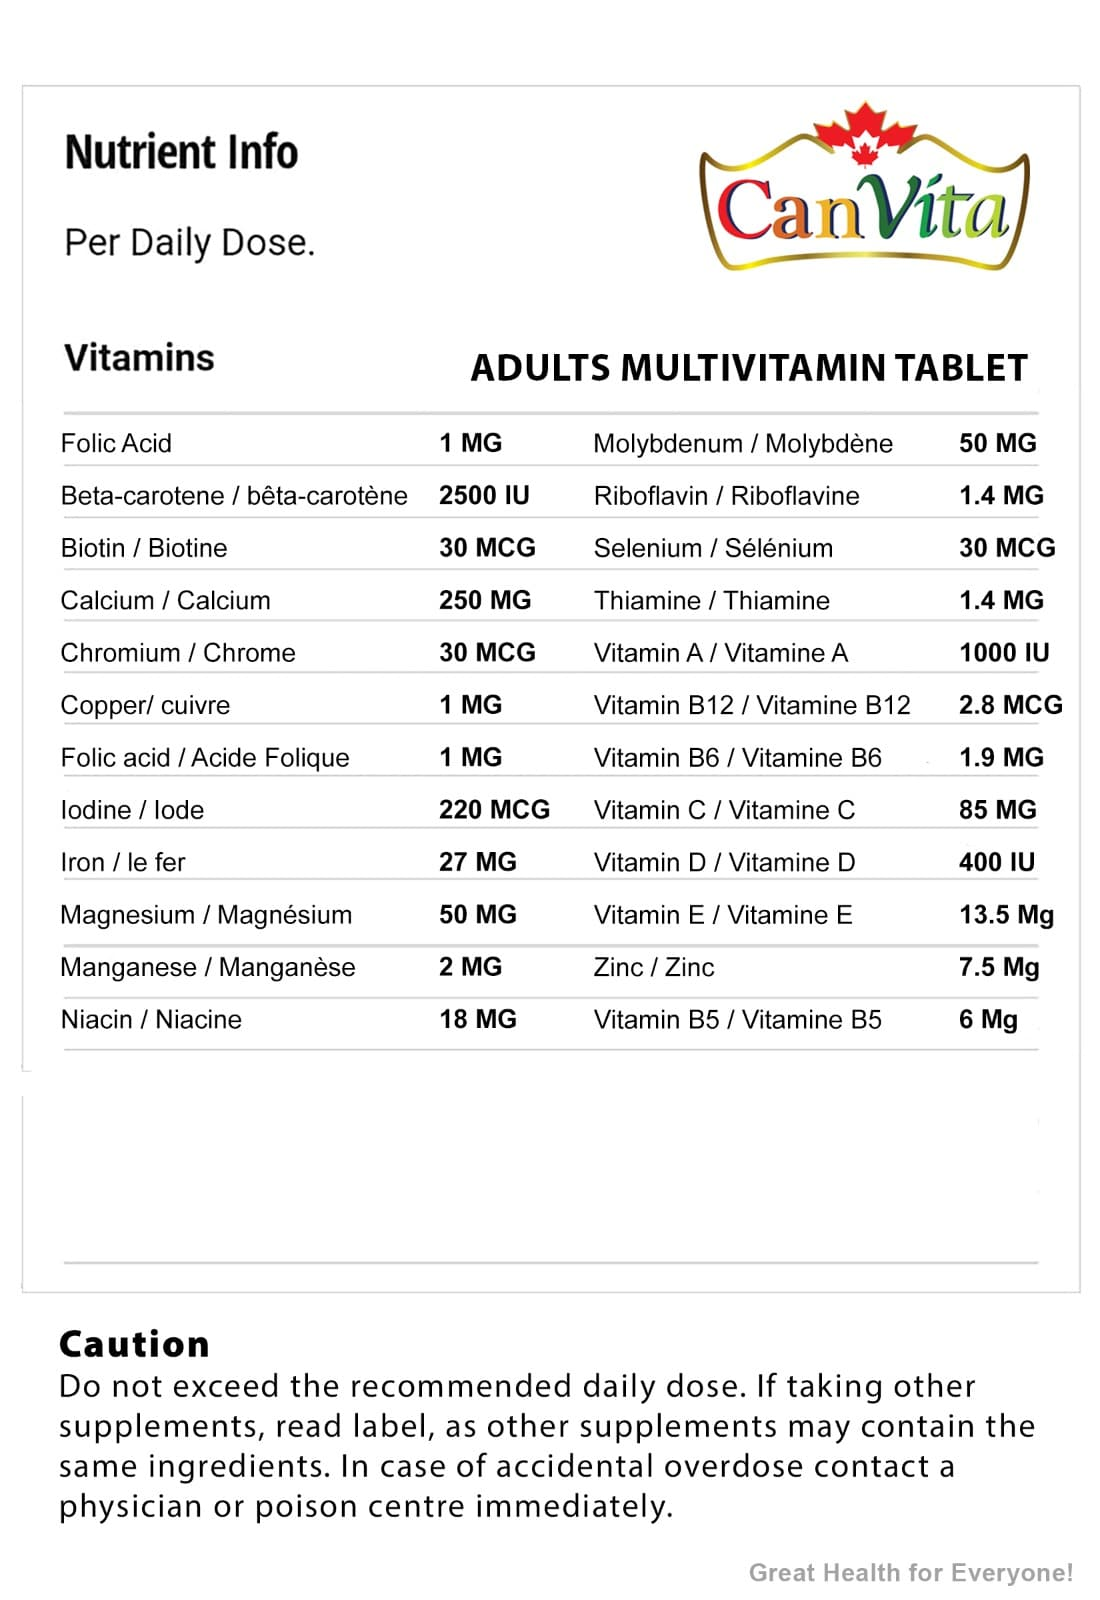 Canvita Adult multivitamin tablet ingredients